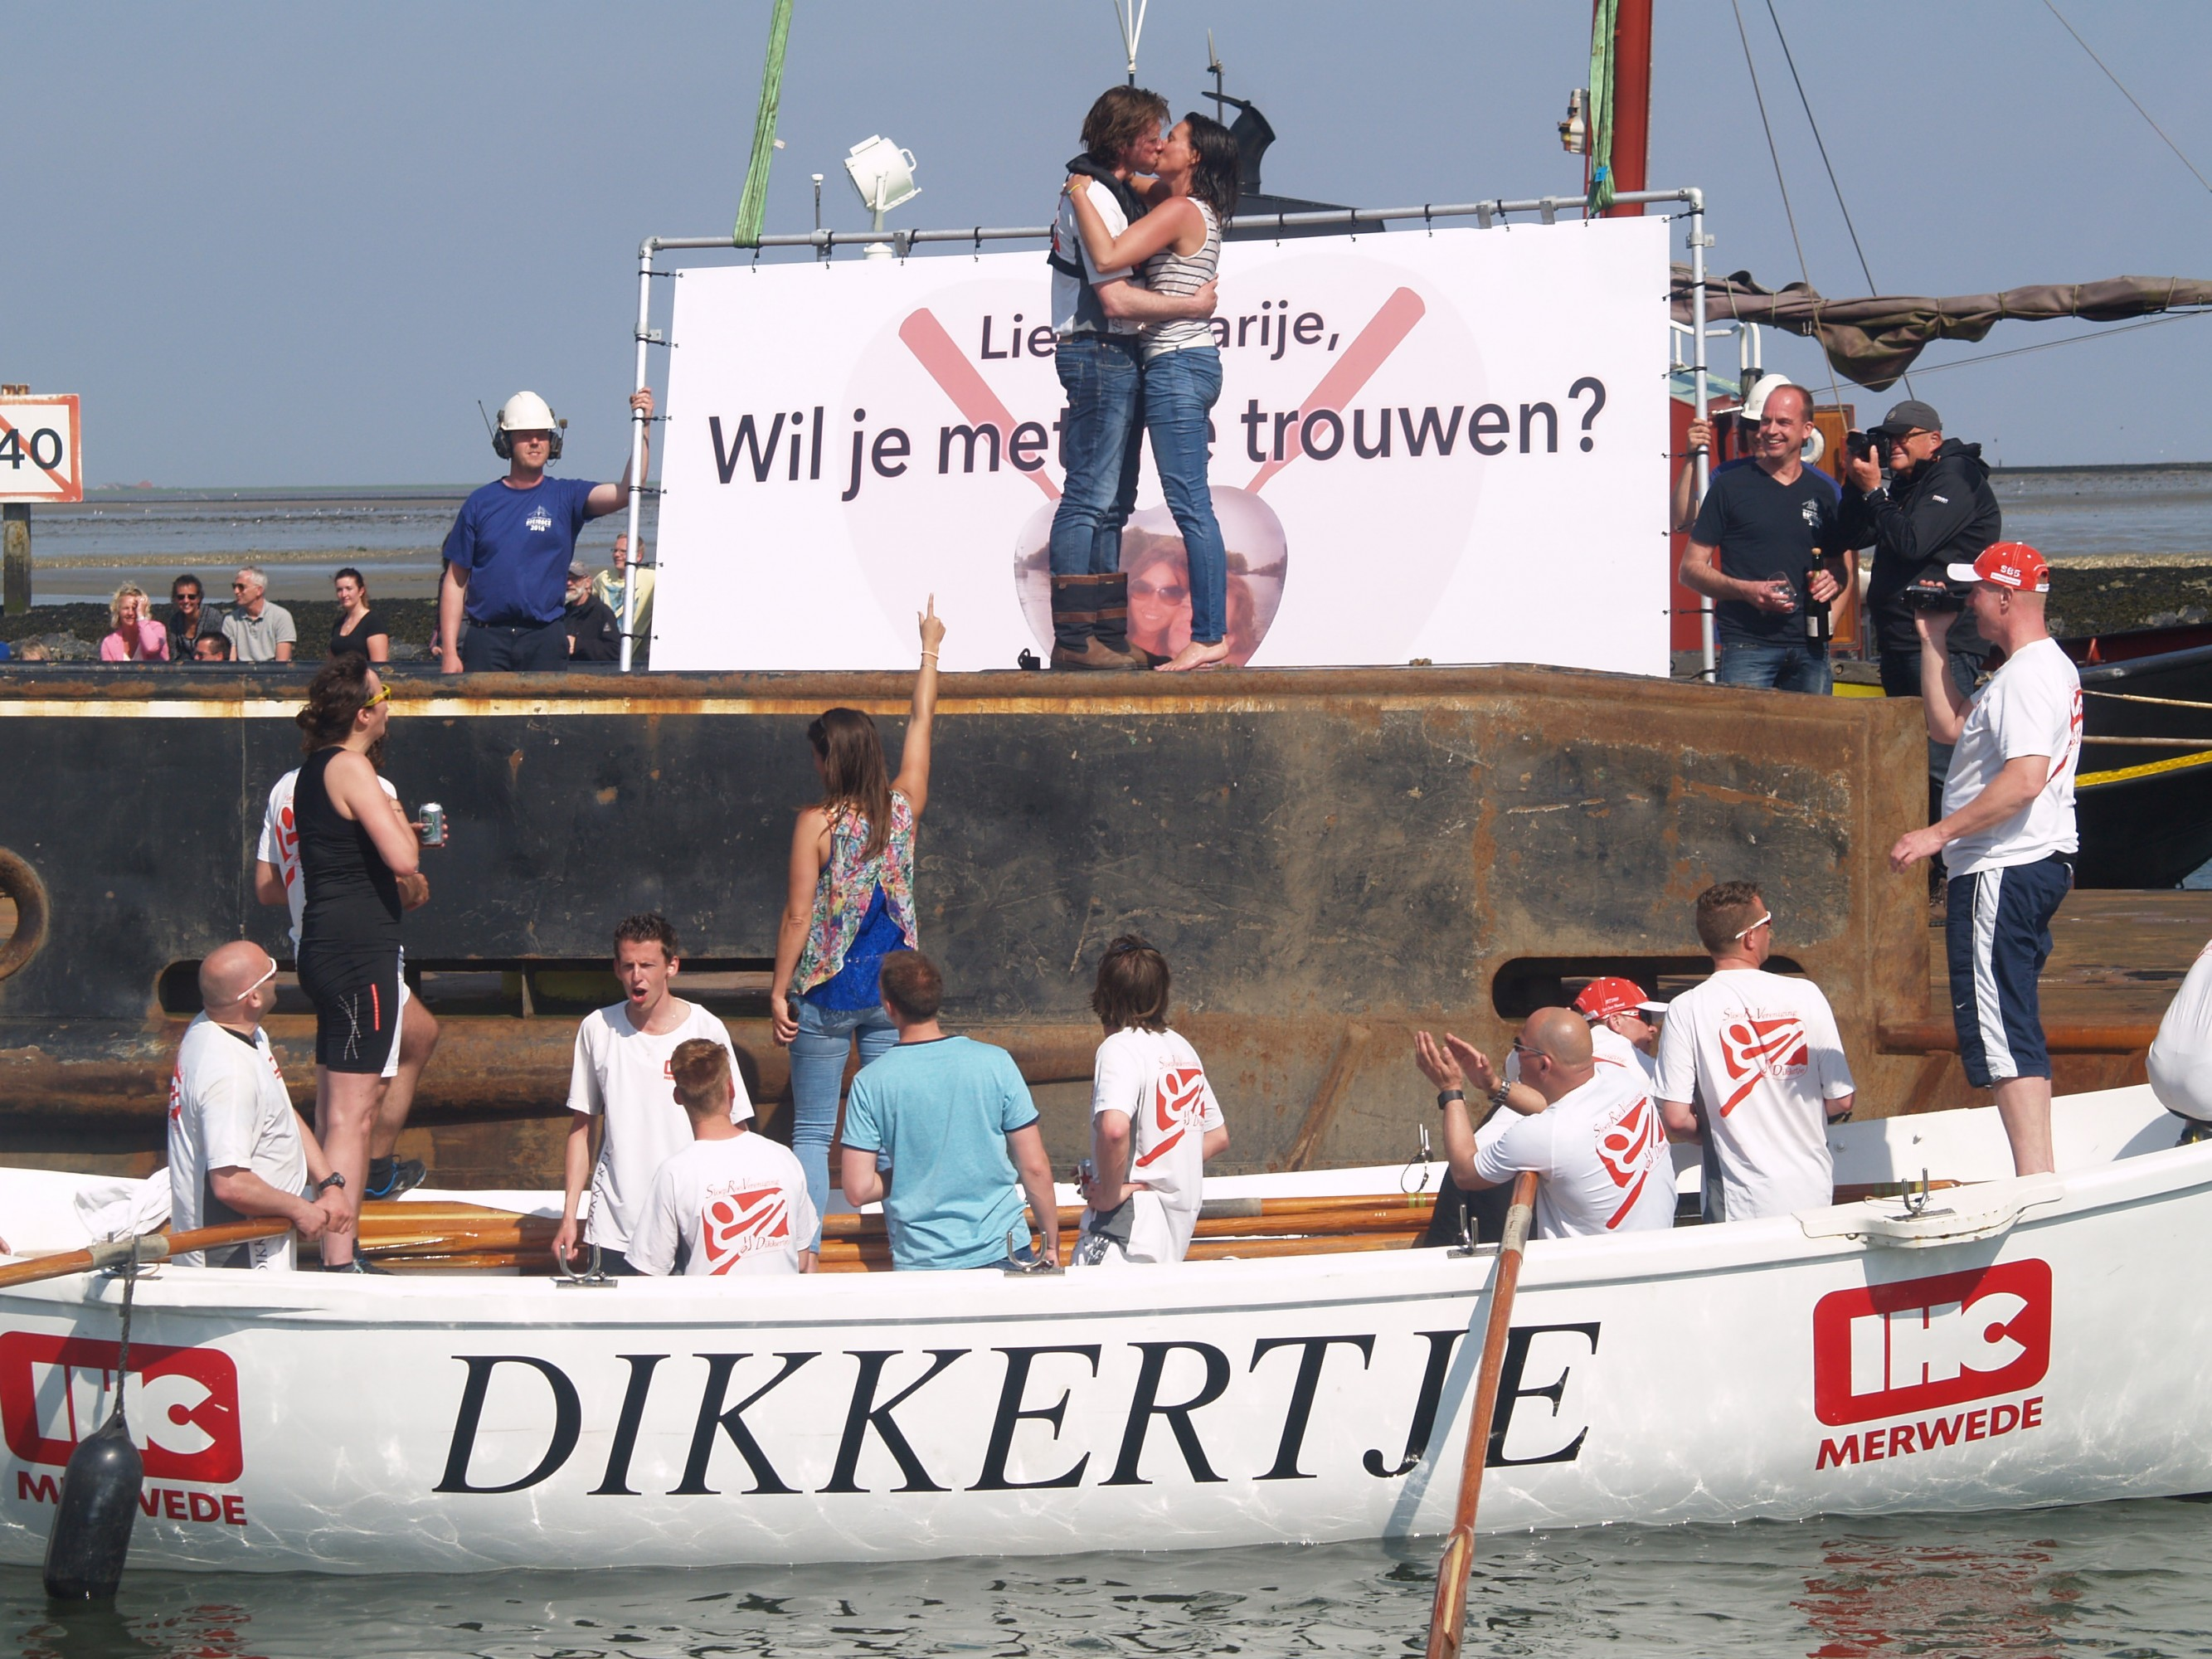 Romantisch aanzoek in haven Terschelling